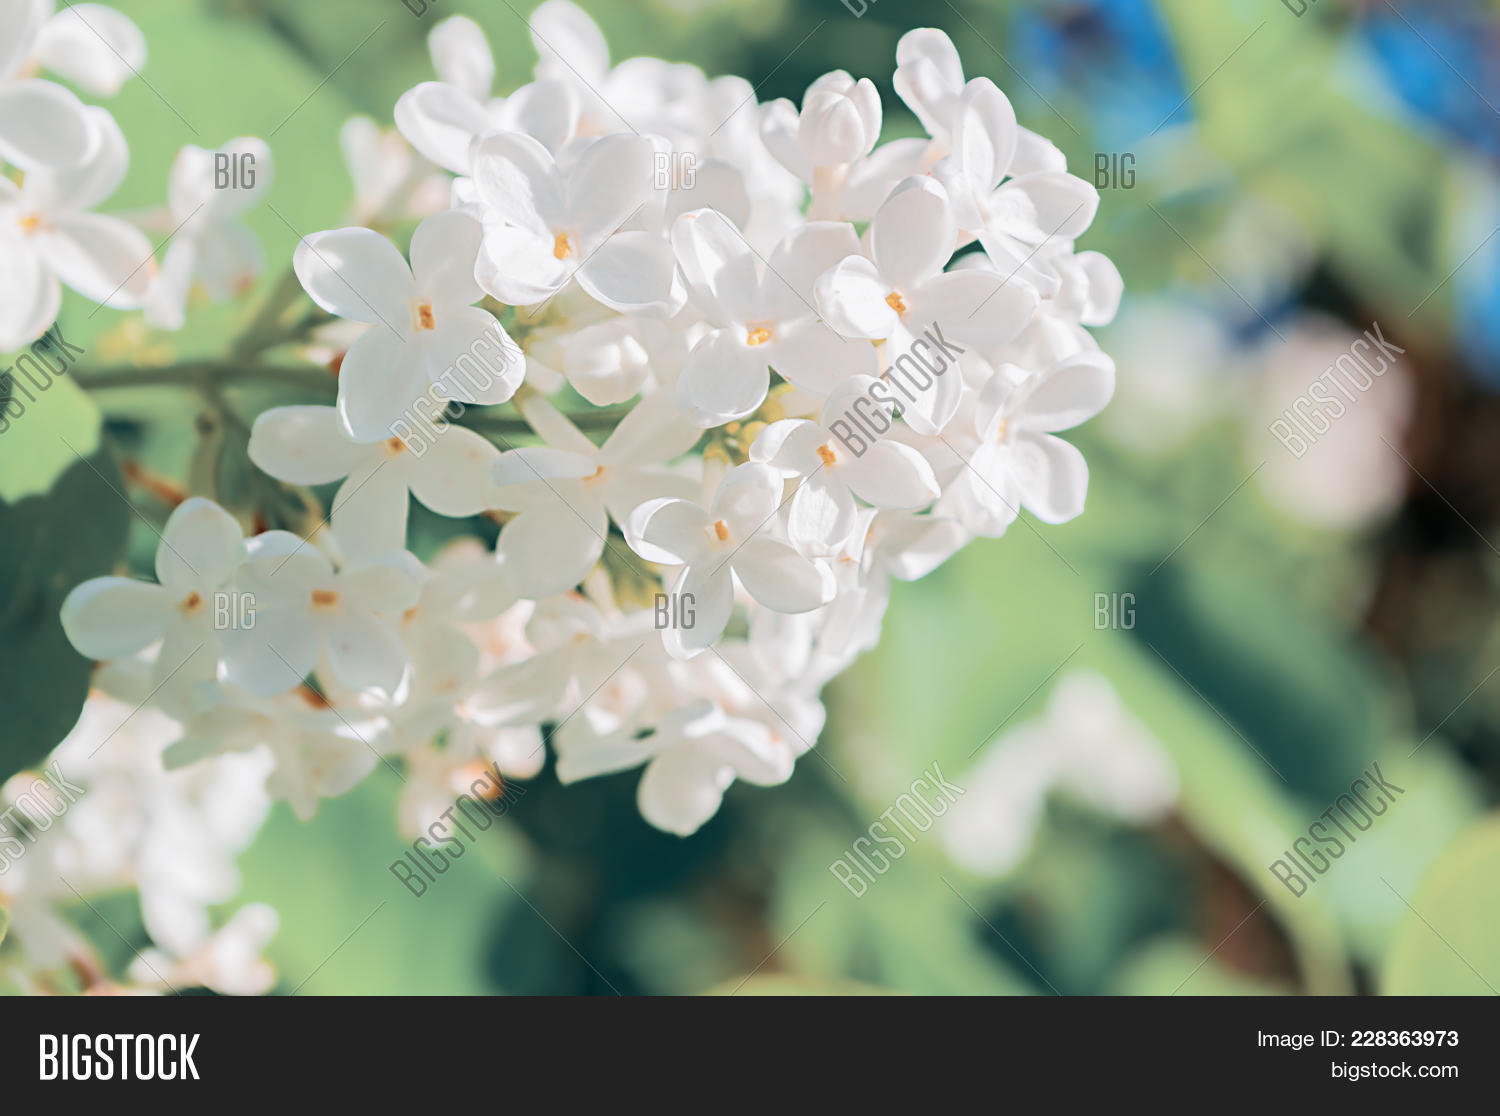 Lilac Flowers Spring Image Photo Free Trial Bigstock